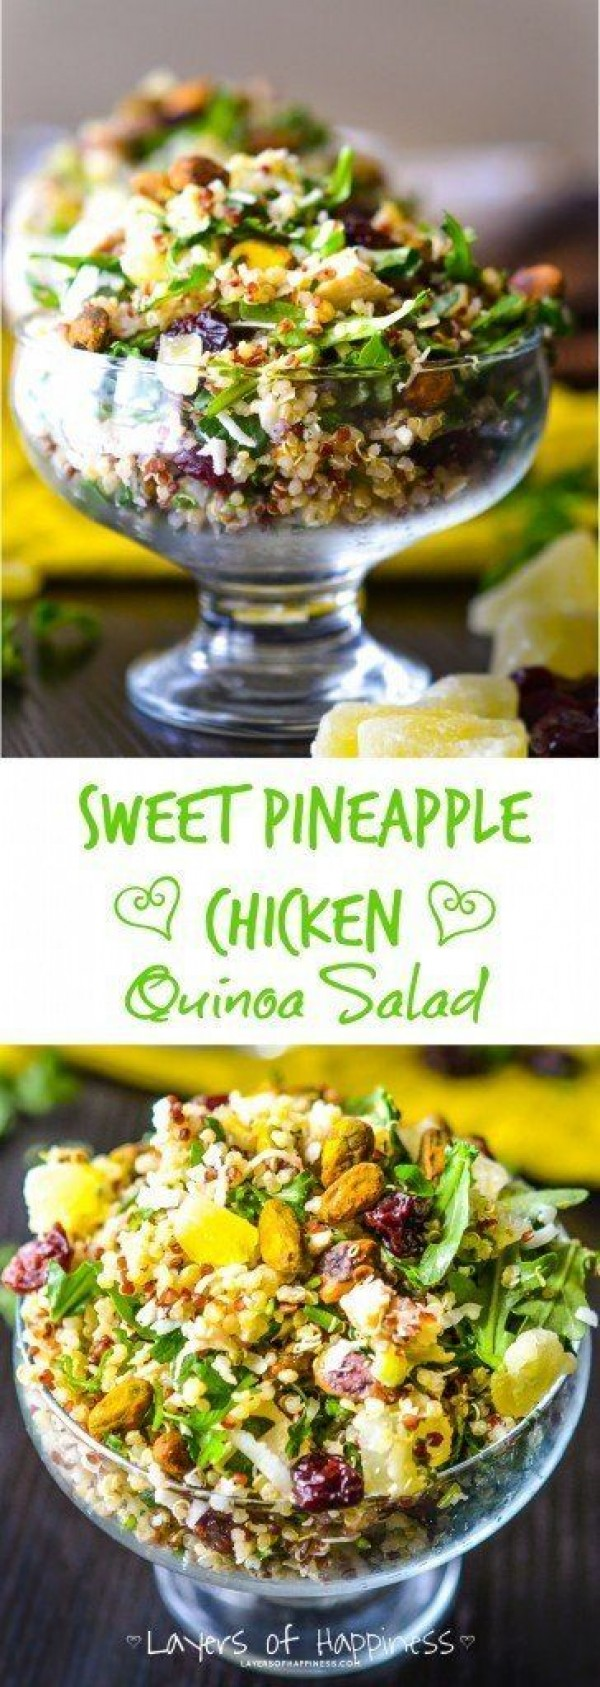 Get the recipe Pineapple Chicken Quinoa Salad @recipes_to_go